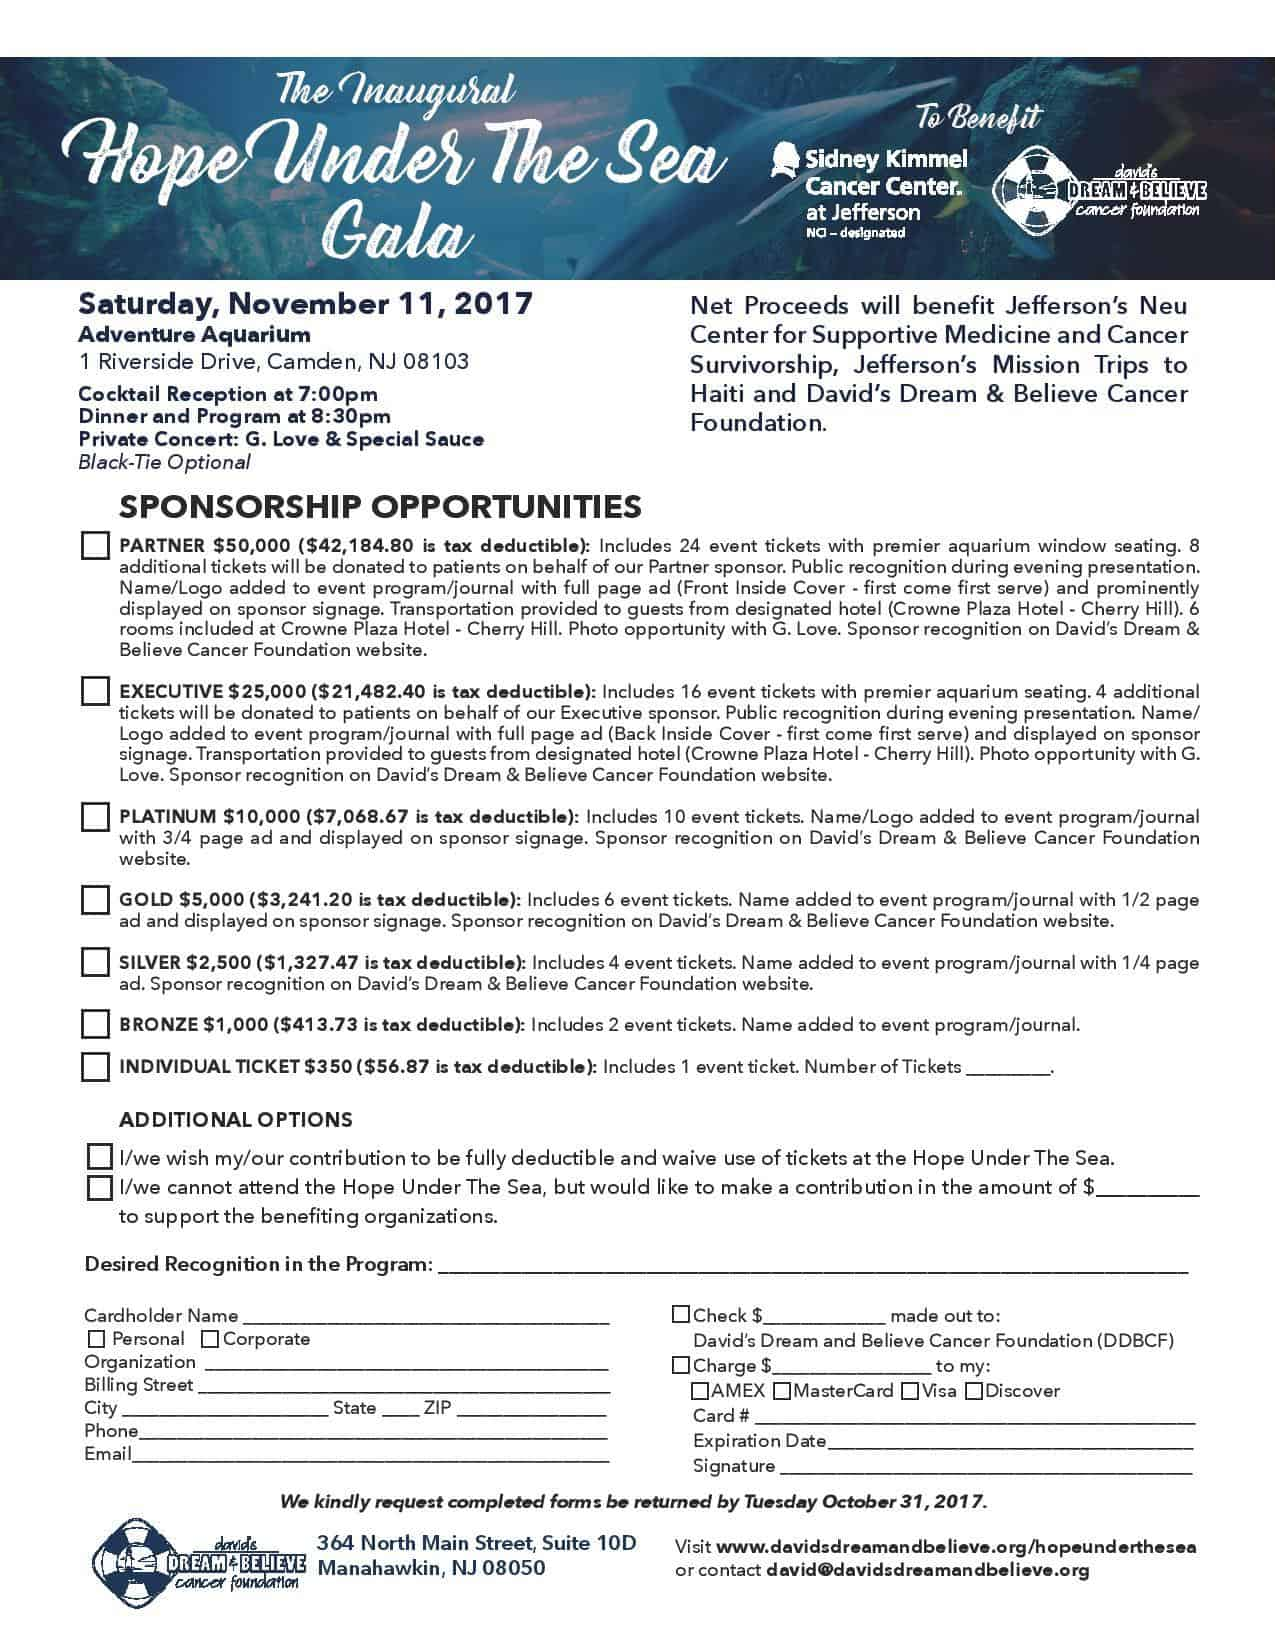 Attend or Sponsor Hope Under the Sea Gala November 11, 2017 at the